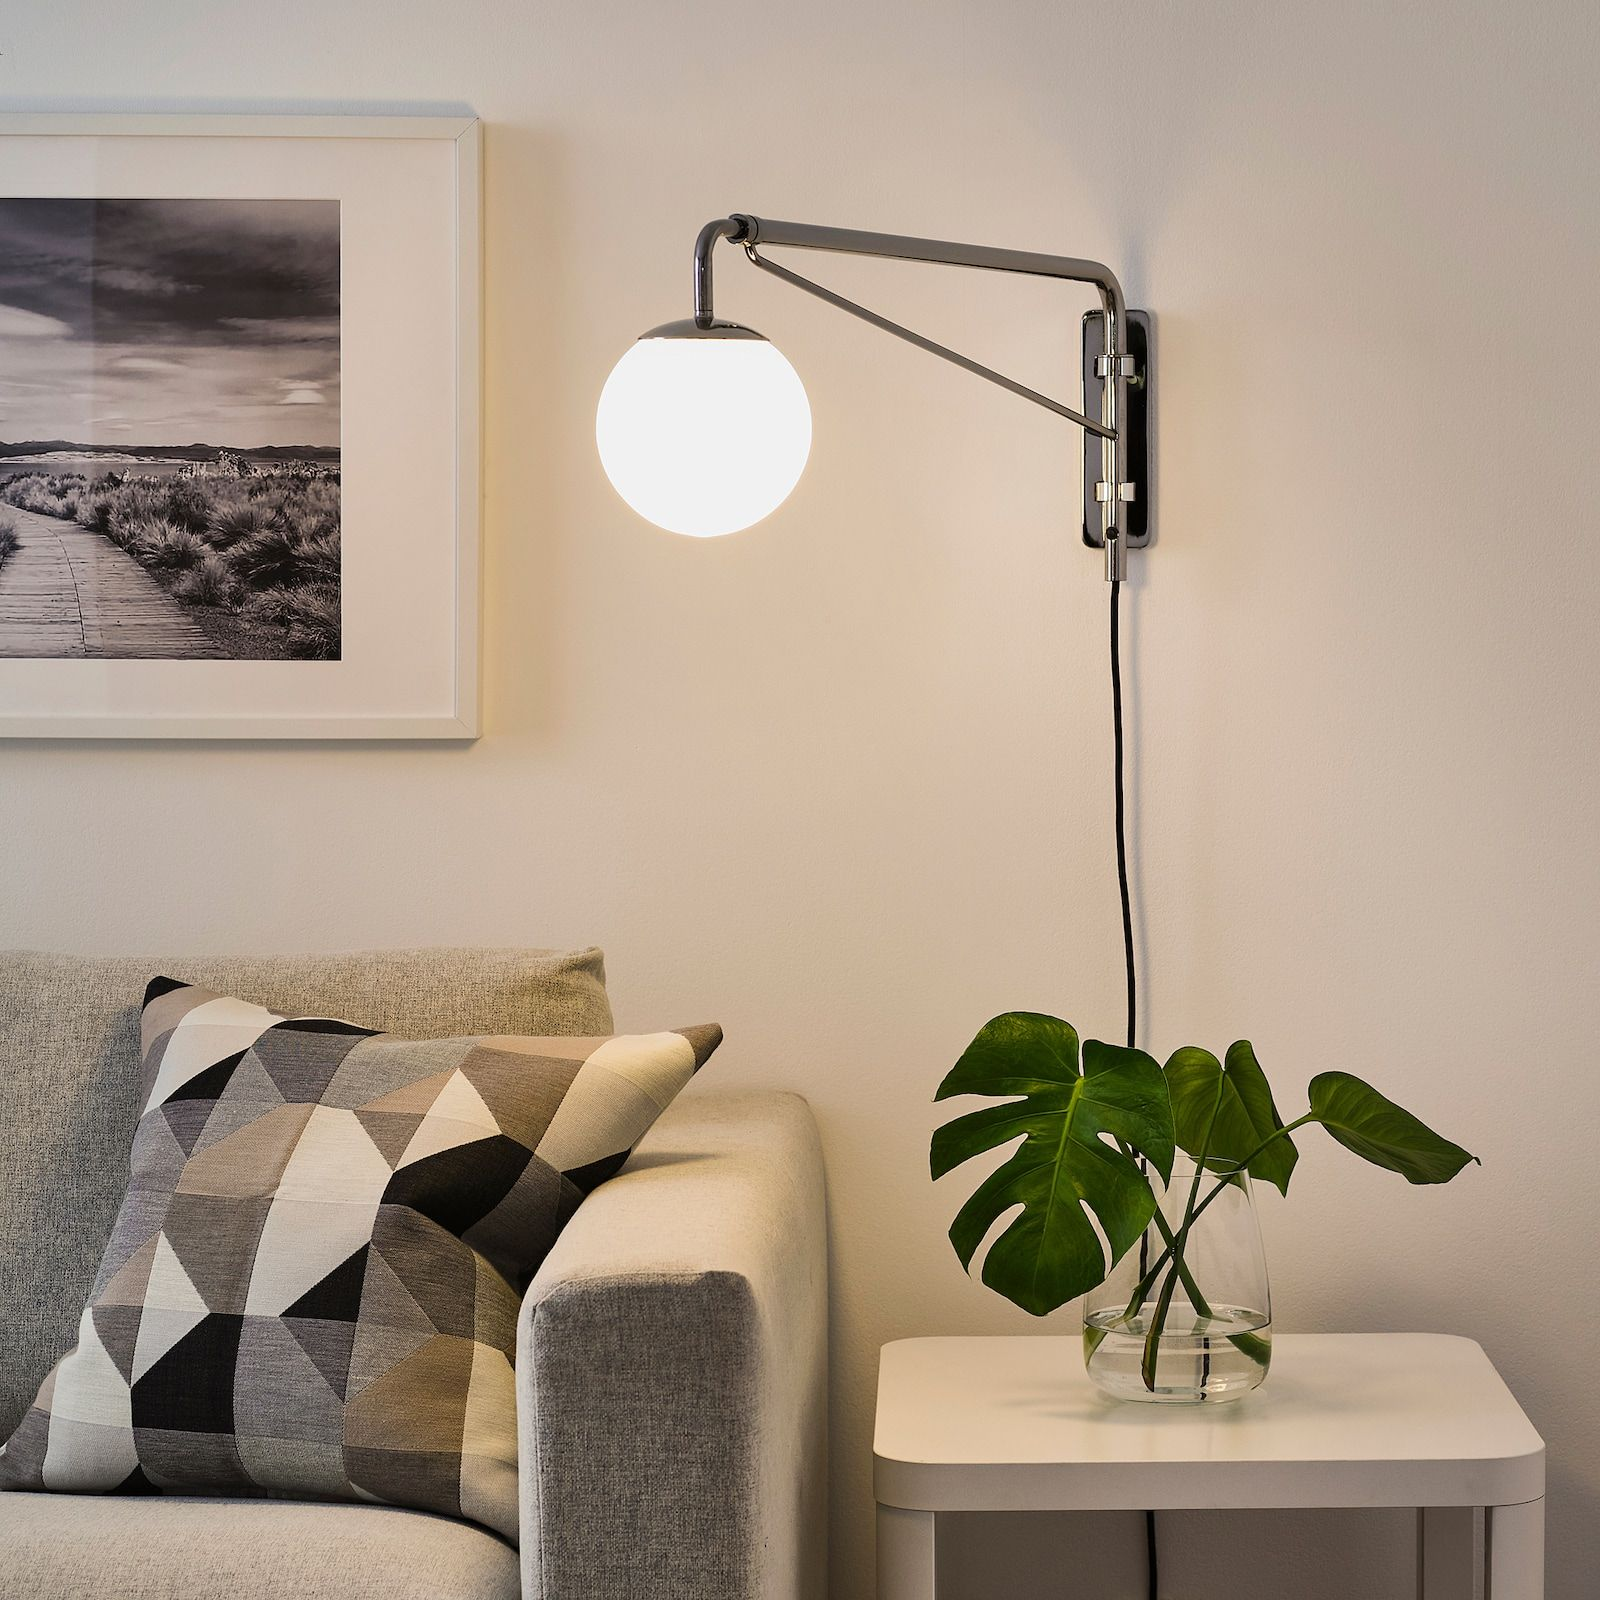 Simrishamn Wall Lamp With Swing Arm Chrome Plated Opal White Glass Ikea In 2021 Wall Lamp Wall Lamps Living Room Plug In Hanging Light Side lights for living room